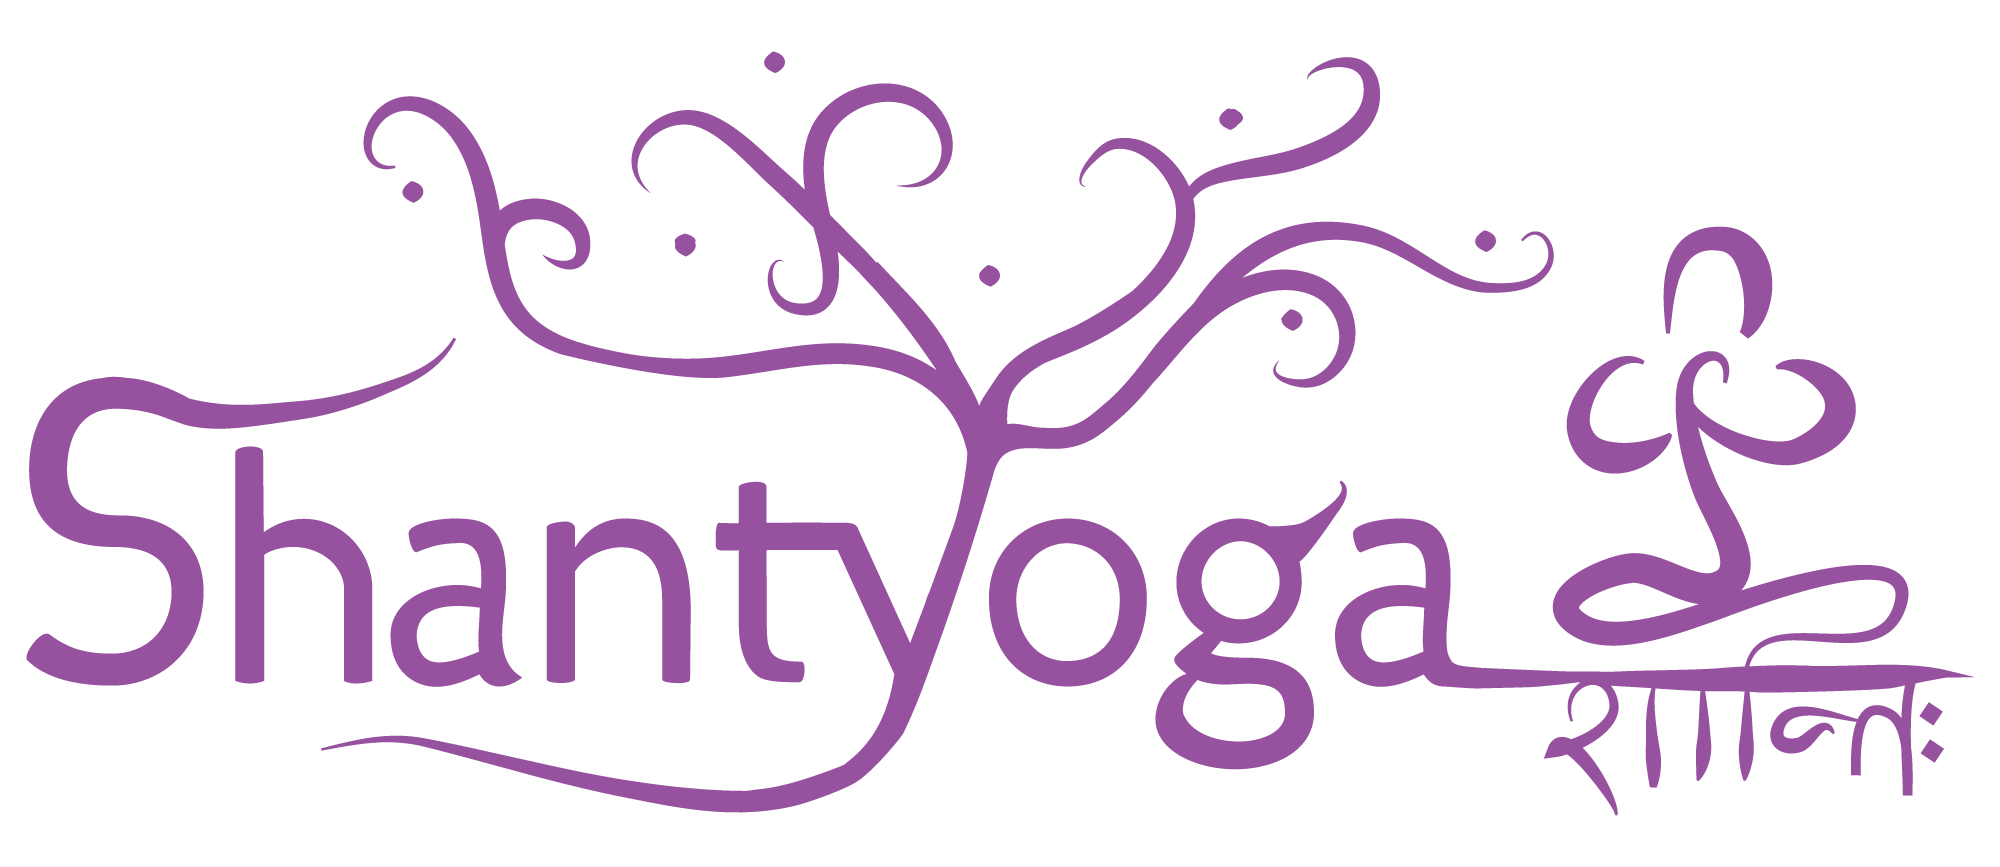 shantyoga formation yoga intitiale